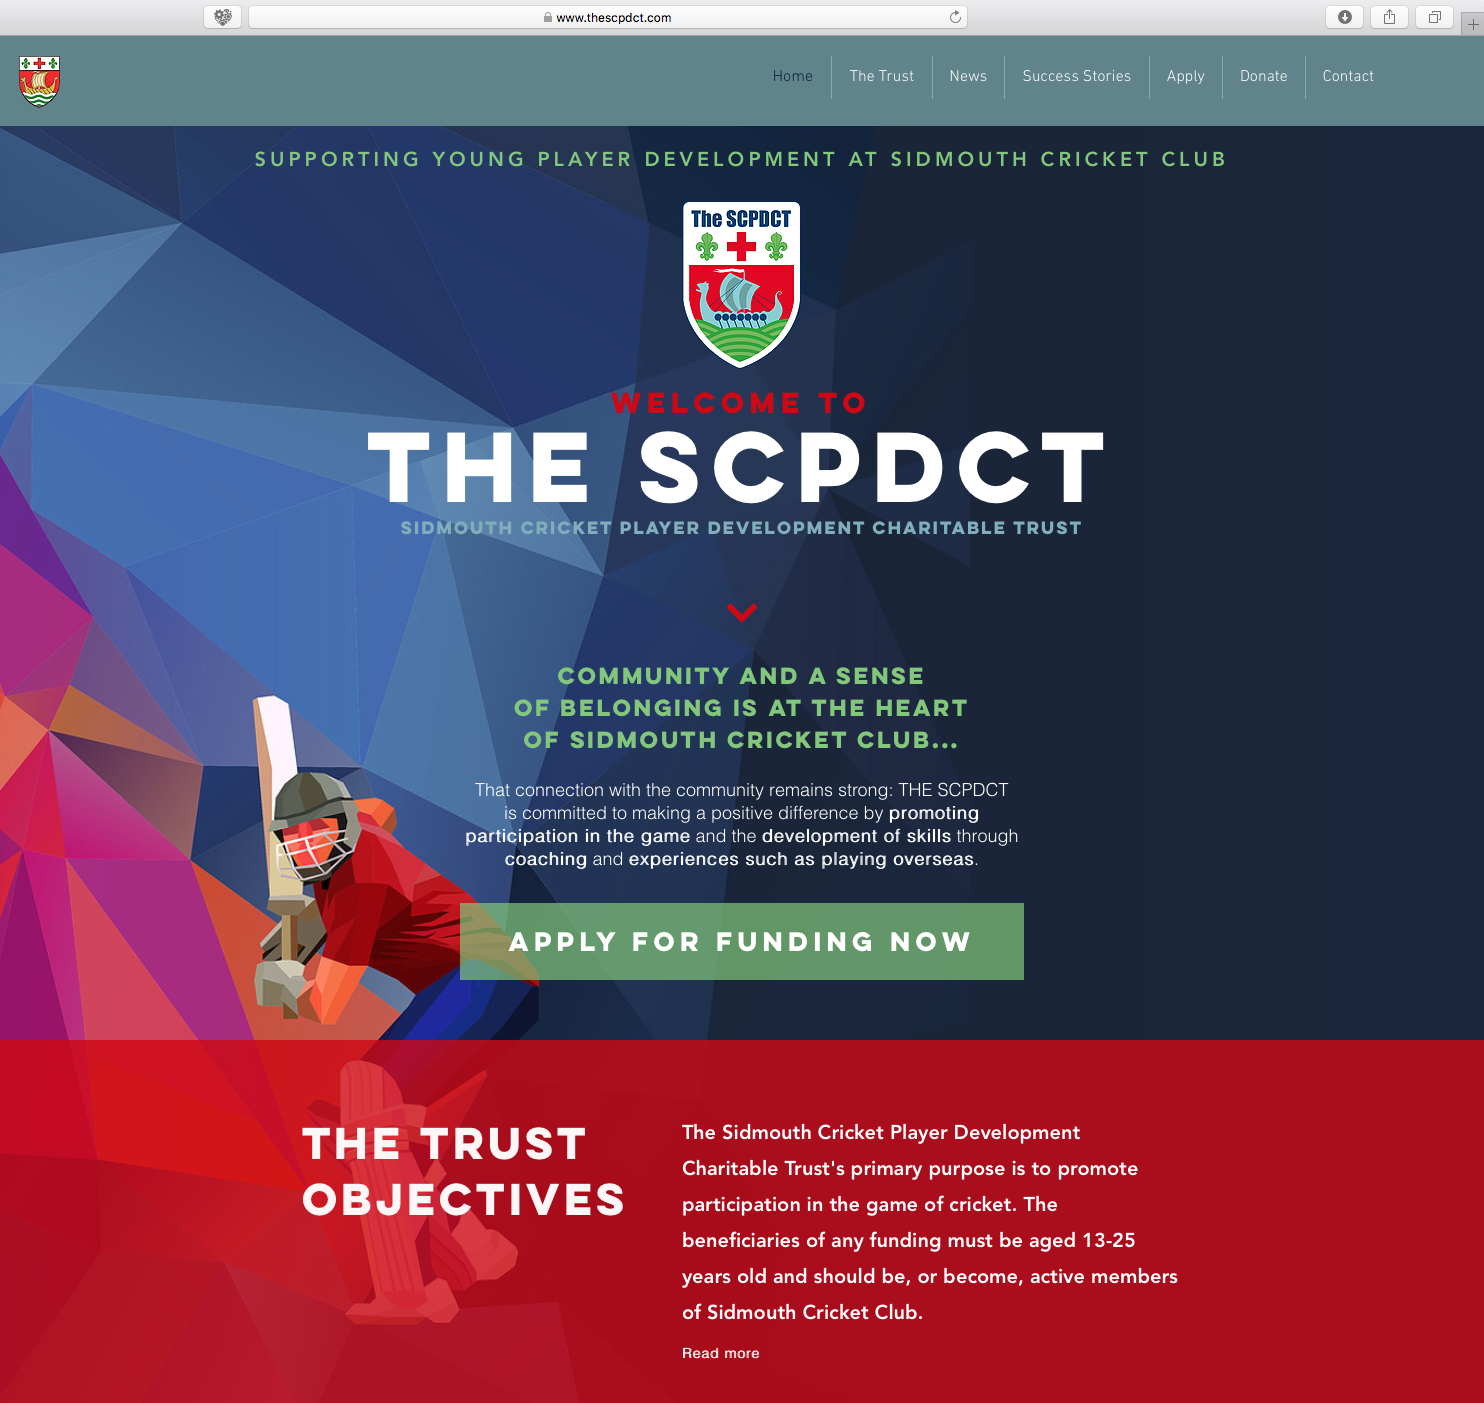 The SCPDCT